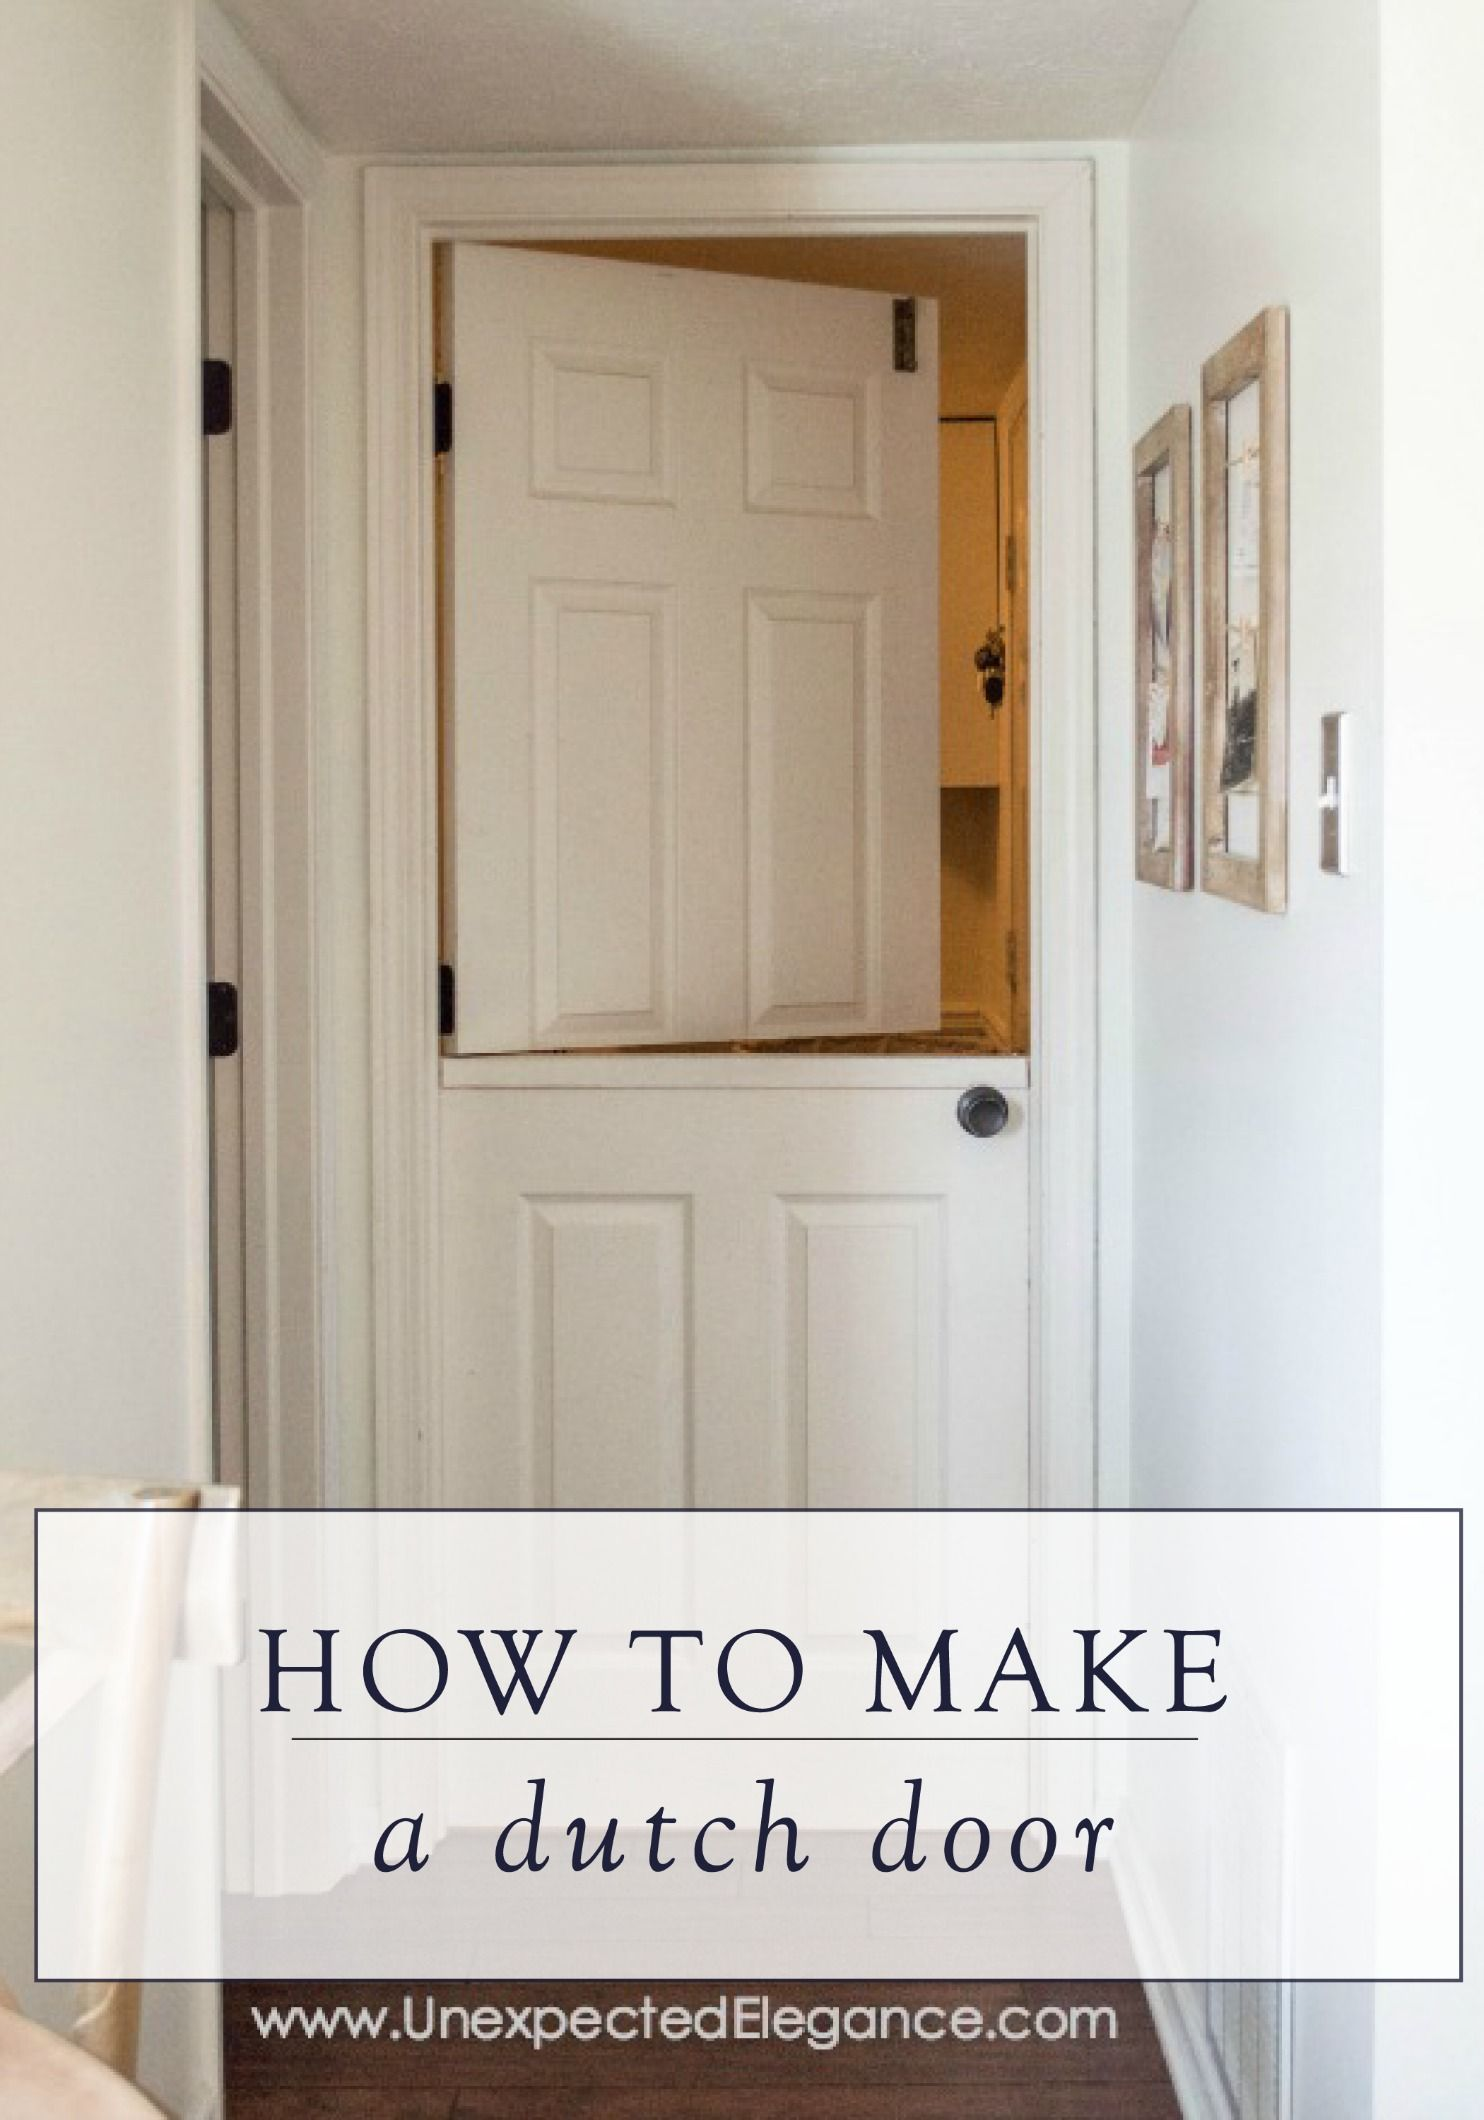 How To Make A Dutch Door From Interior